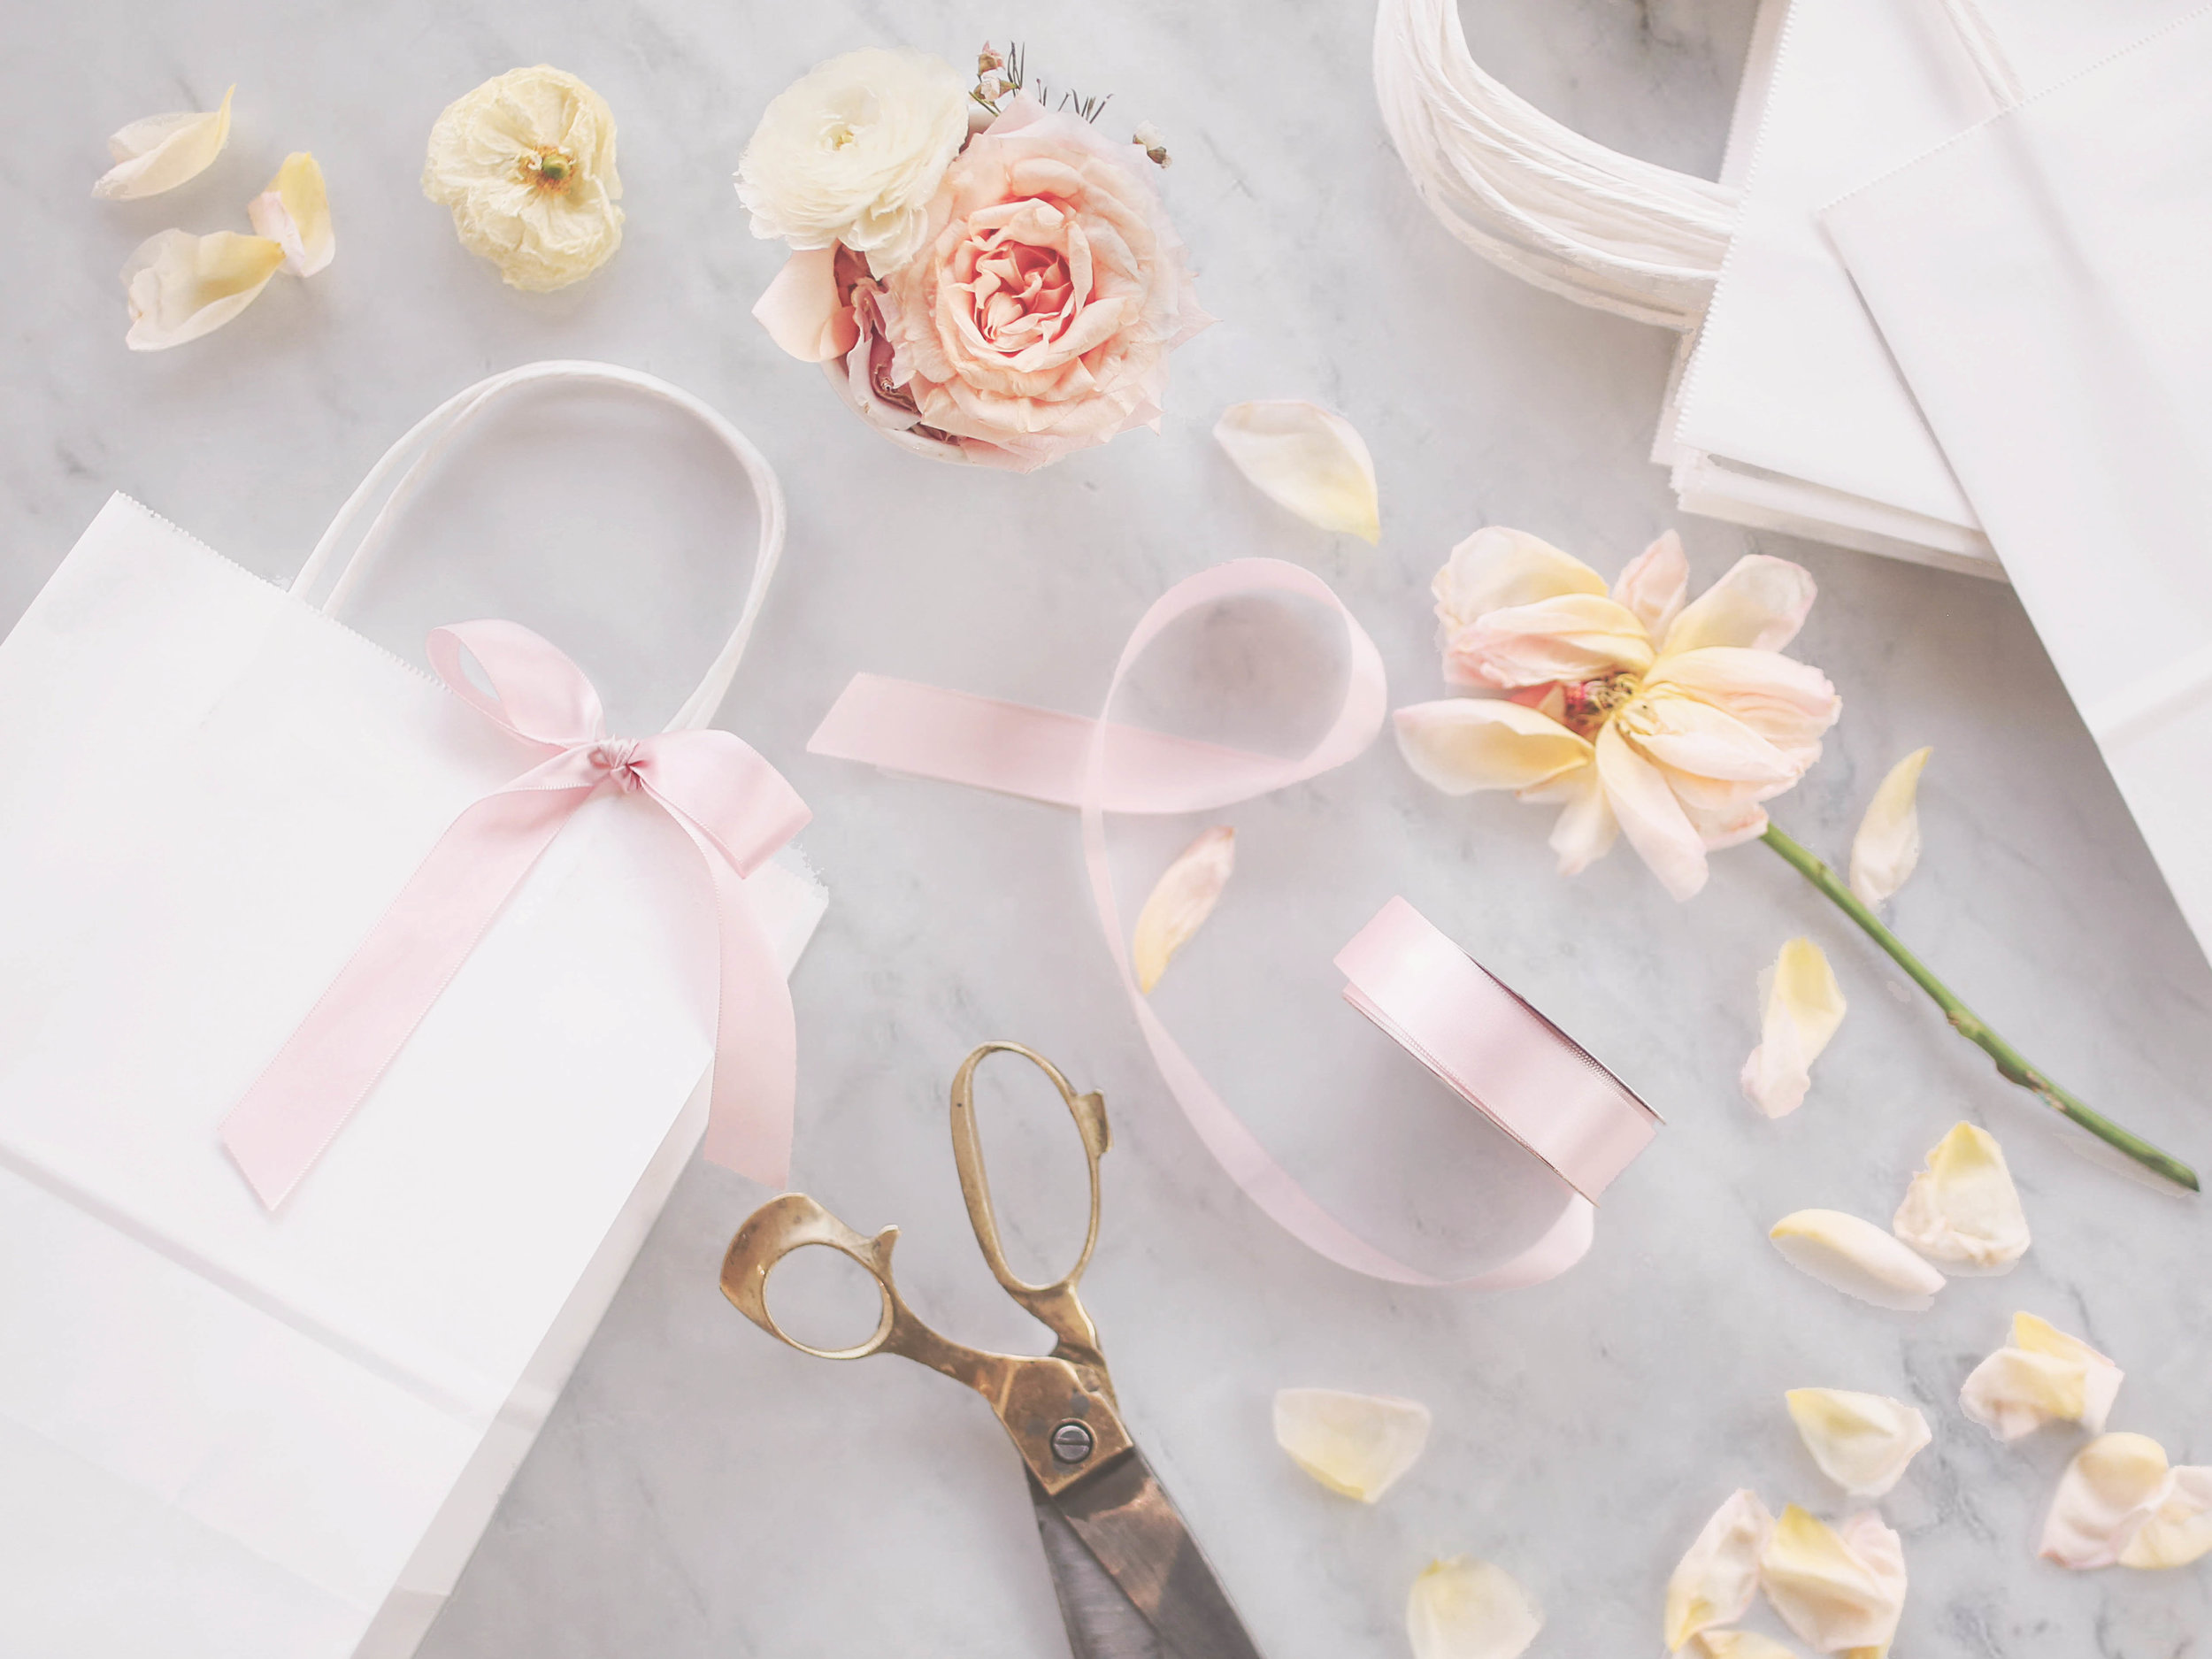 laurennicolefoot-2019-april-wedding-gift-bags-10_MARBLE.jpg